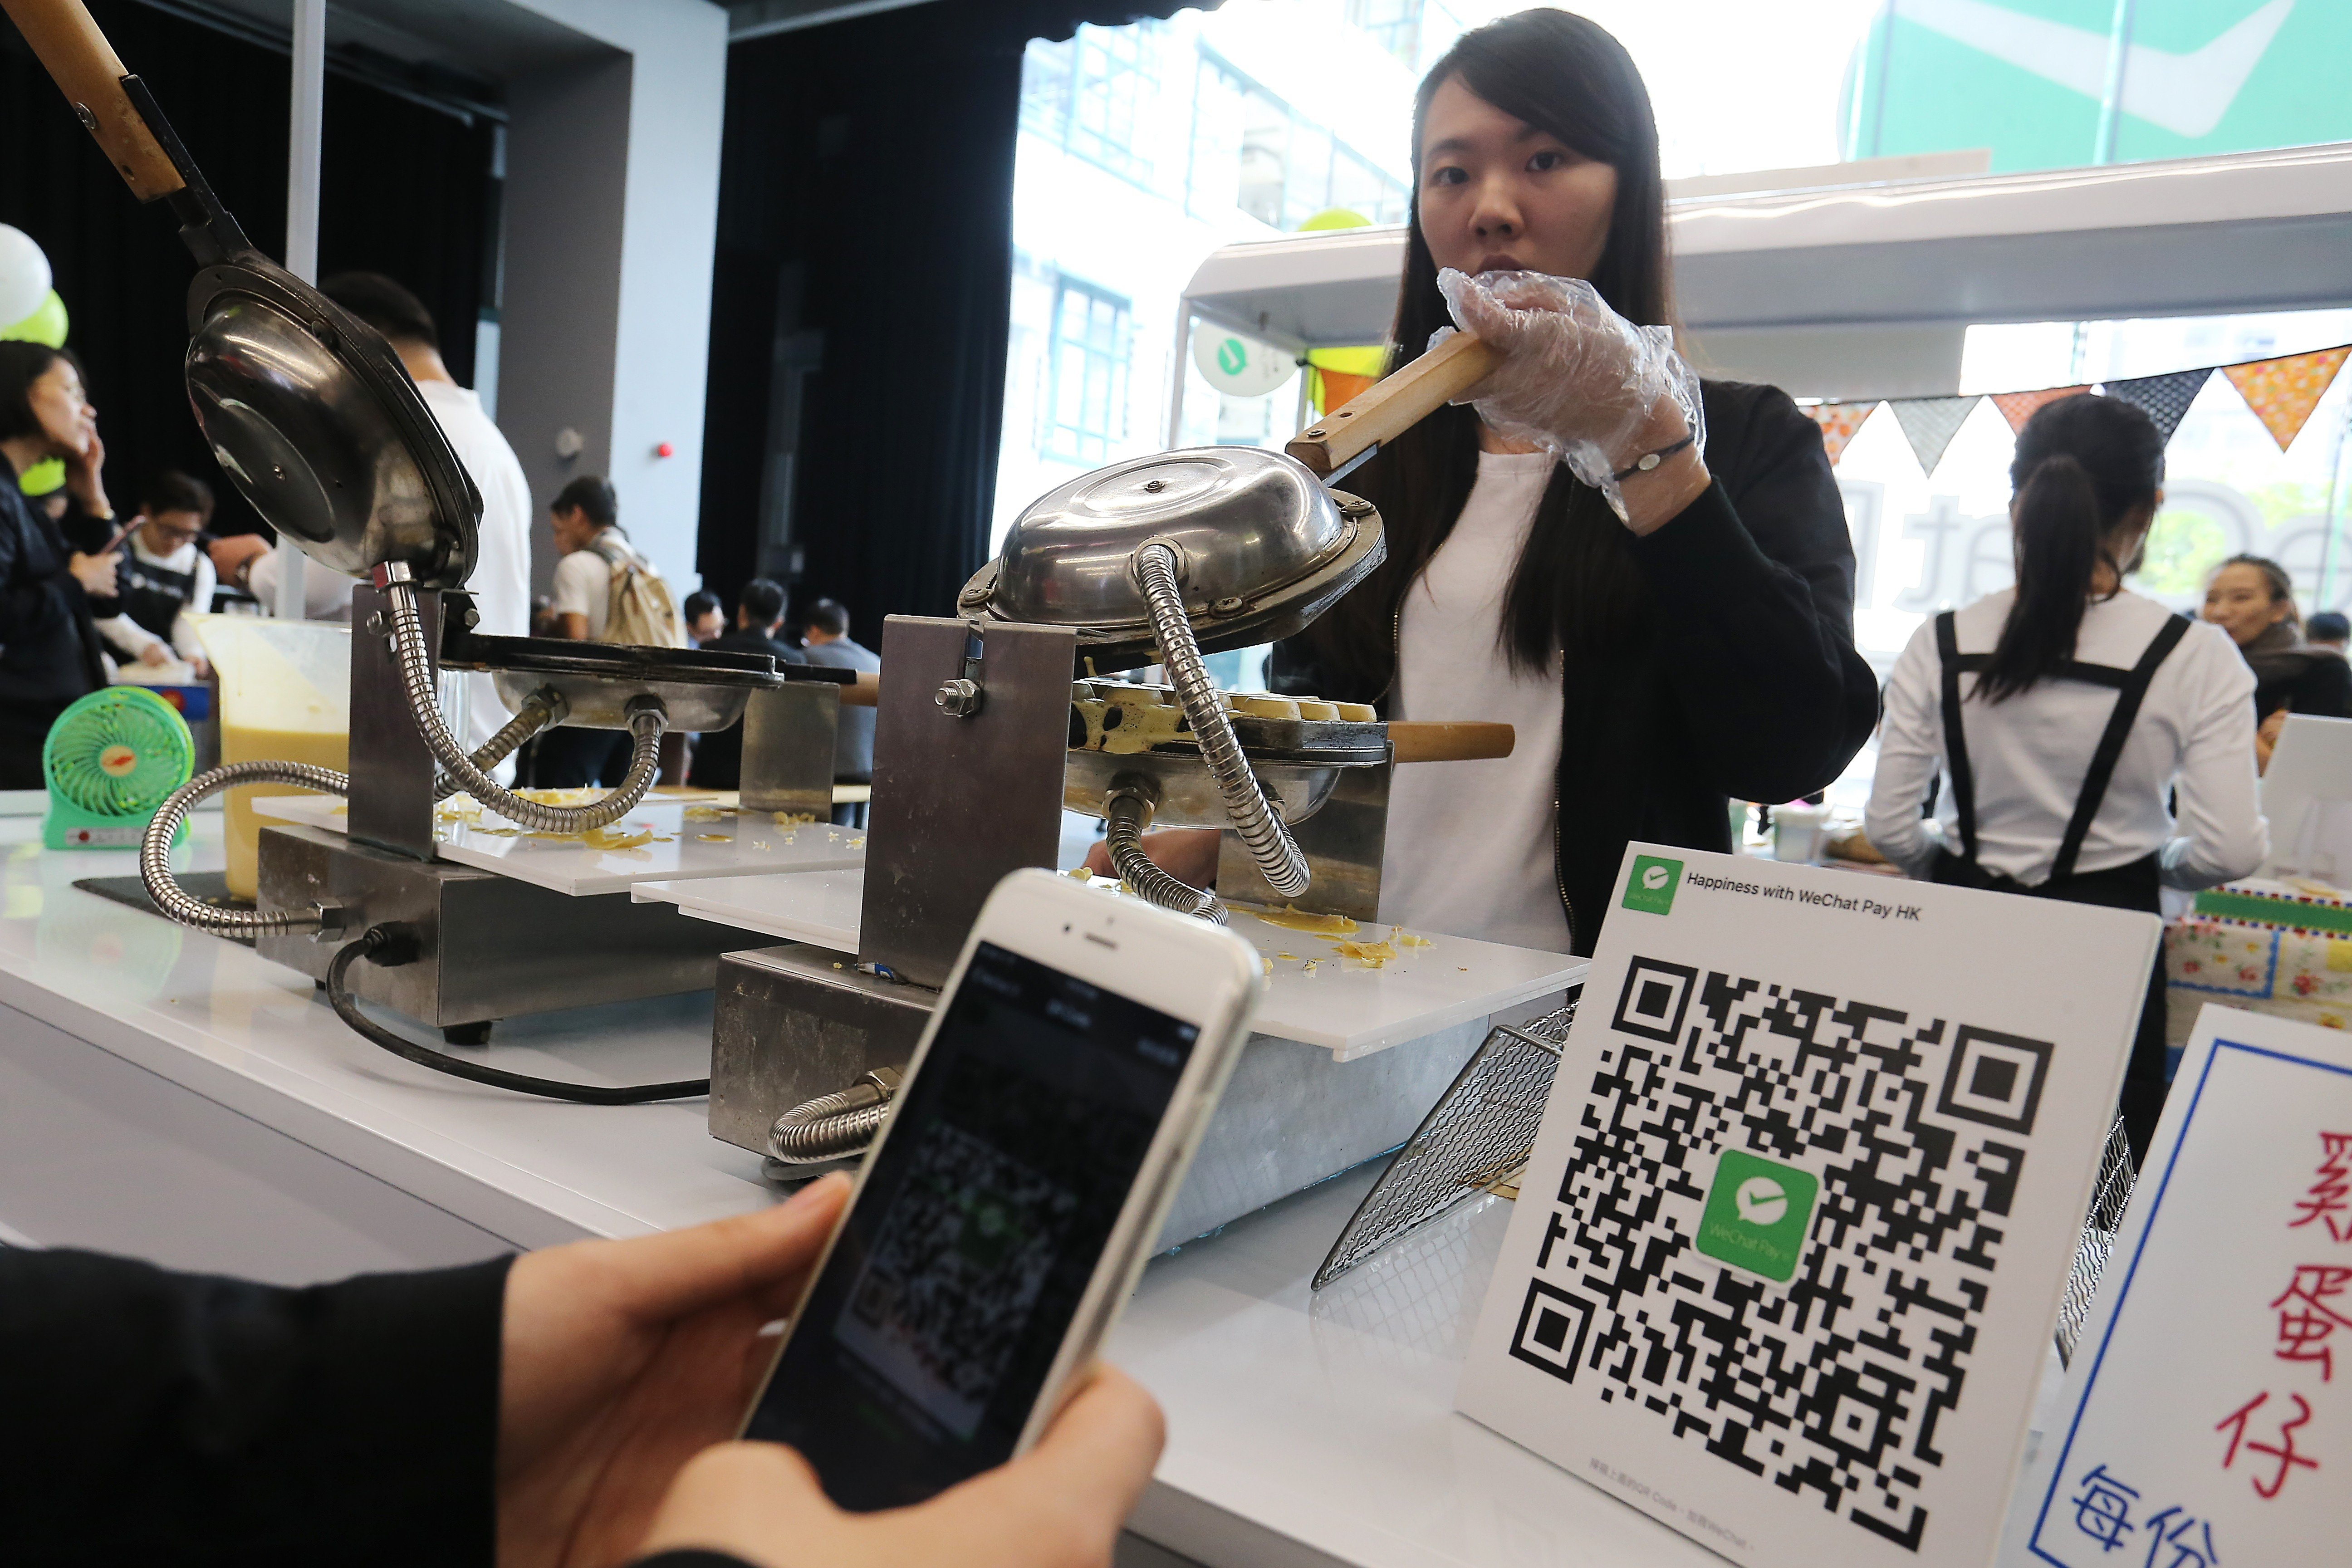 Tencent's WeChat Pay to allow Hong Kong users to pay for